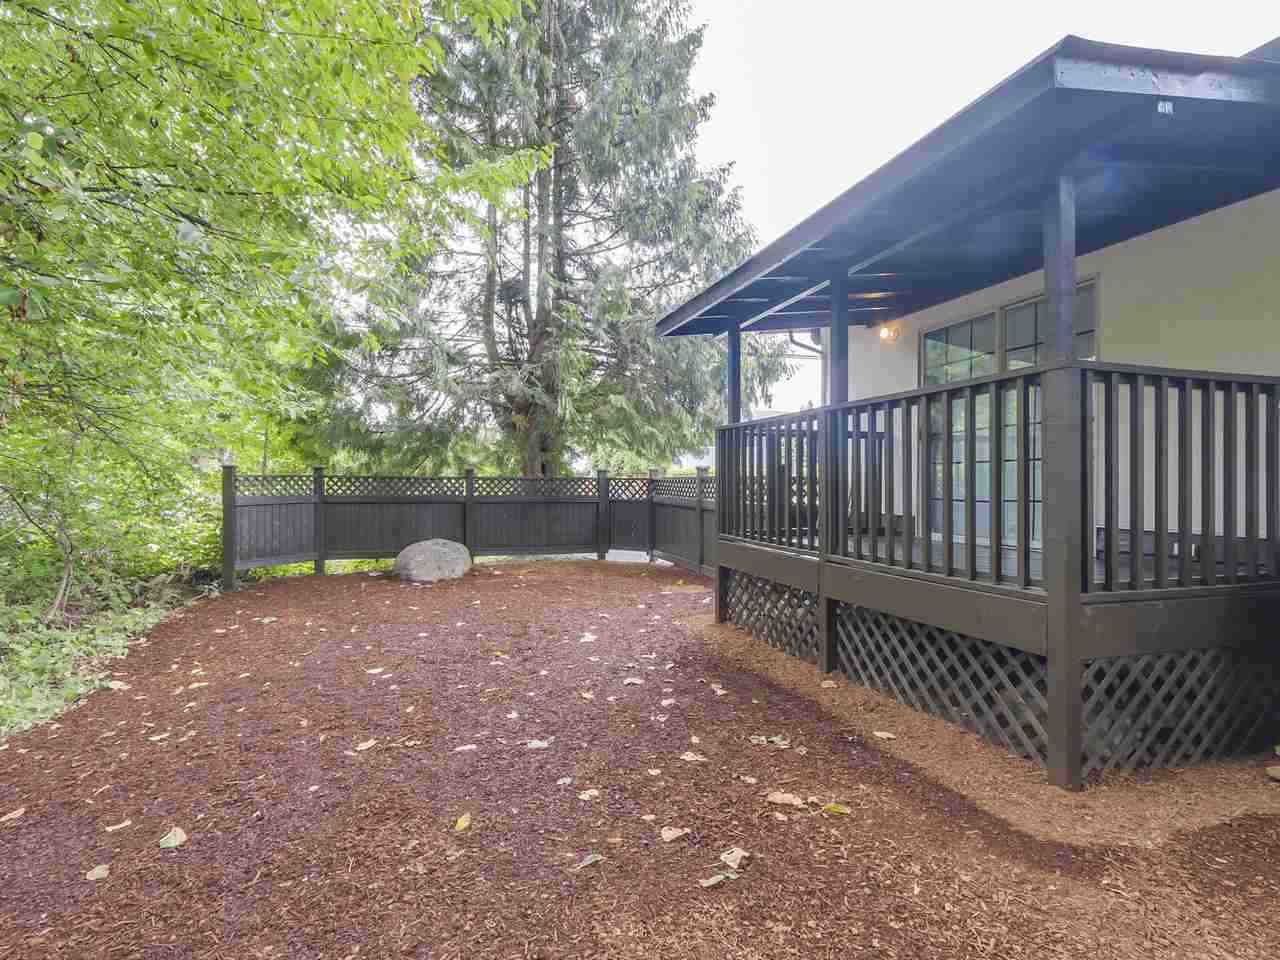 """Photo 12: Photos: 1673 GREENMOUNT Avenue in Port Coquitlam: Oxford Heights 1/2 Duplex for sale in """"OXFORD HEIGHTS"""" : MLS®# R2221936"""